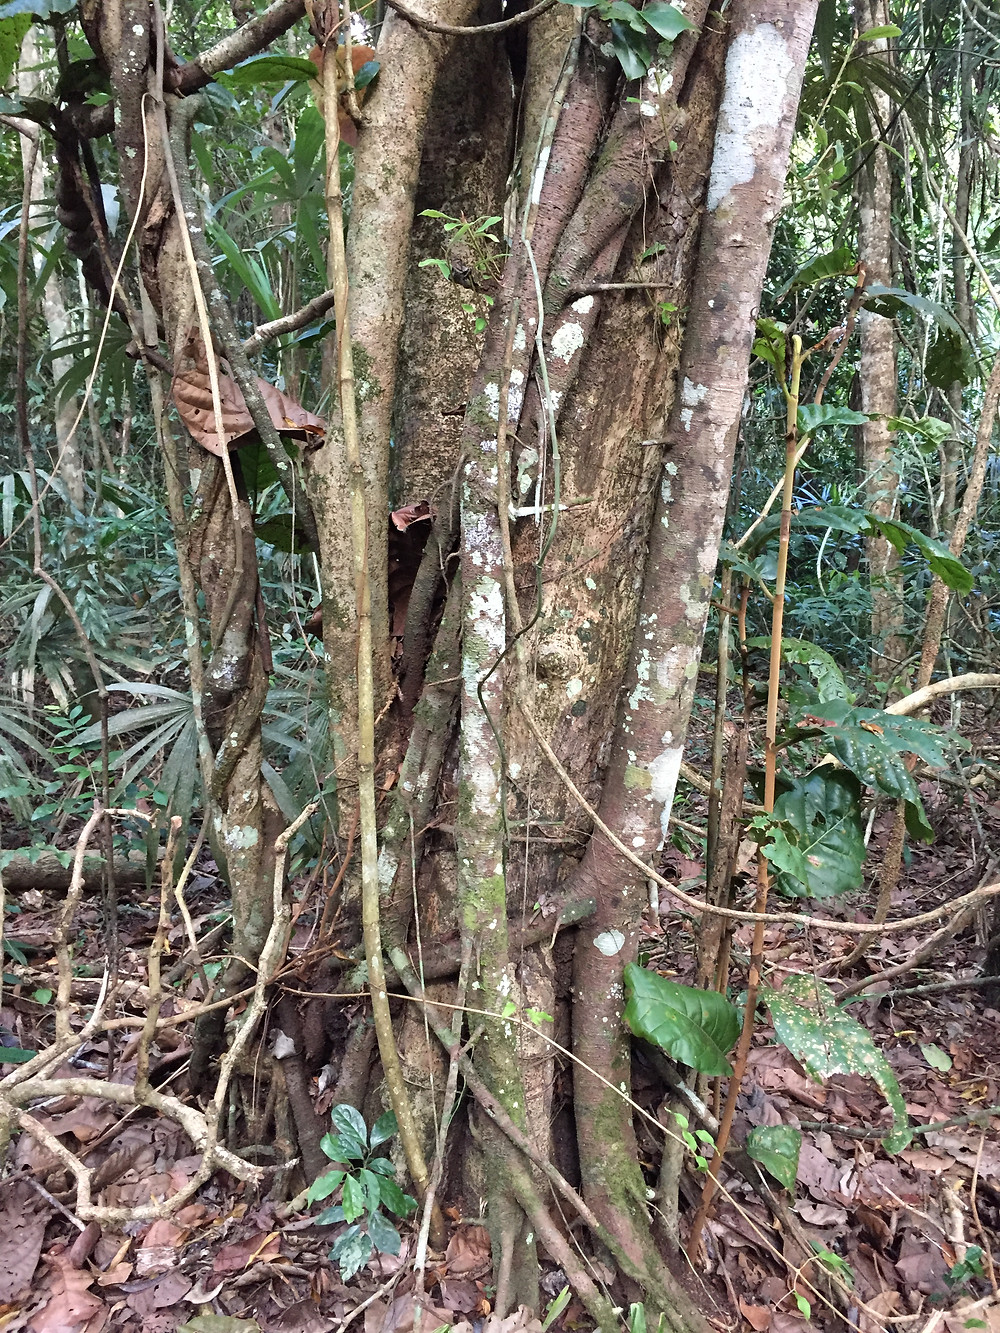 Coccoloba belizensis outwits a strangler fig by generating new sprouts outside the main stem that is being strangled!   The power of clonality!